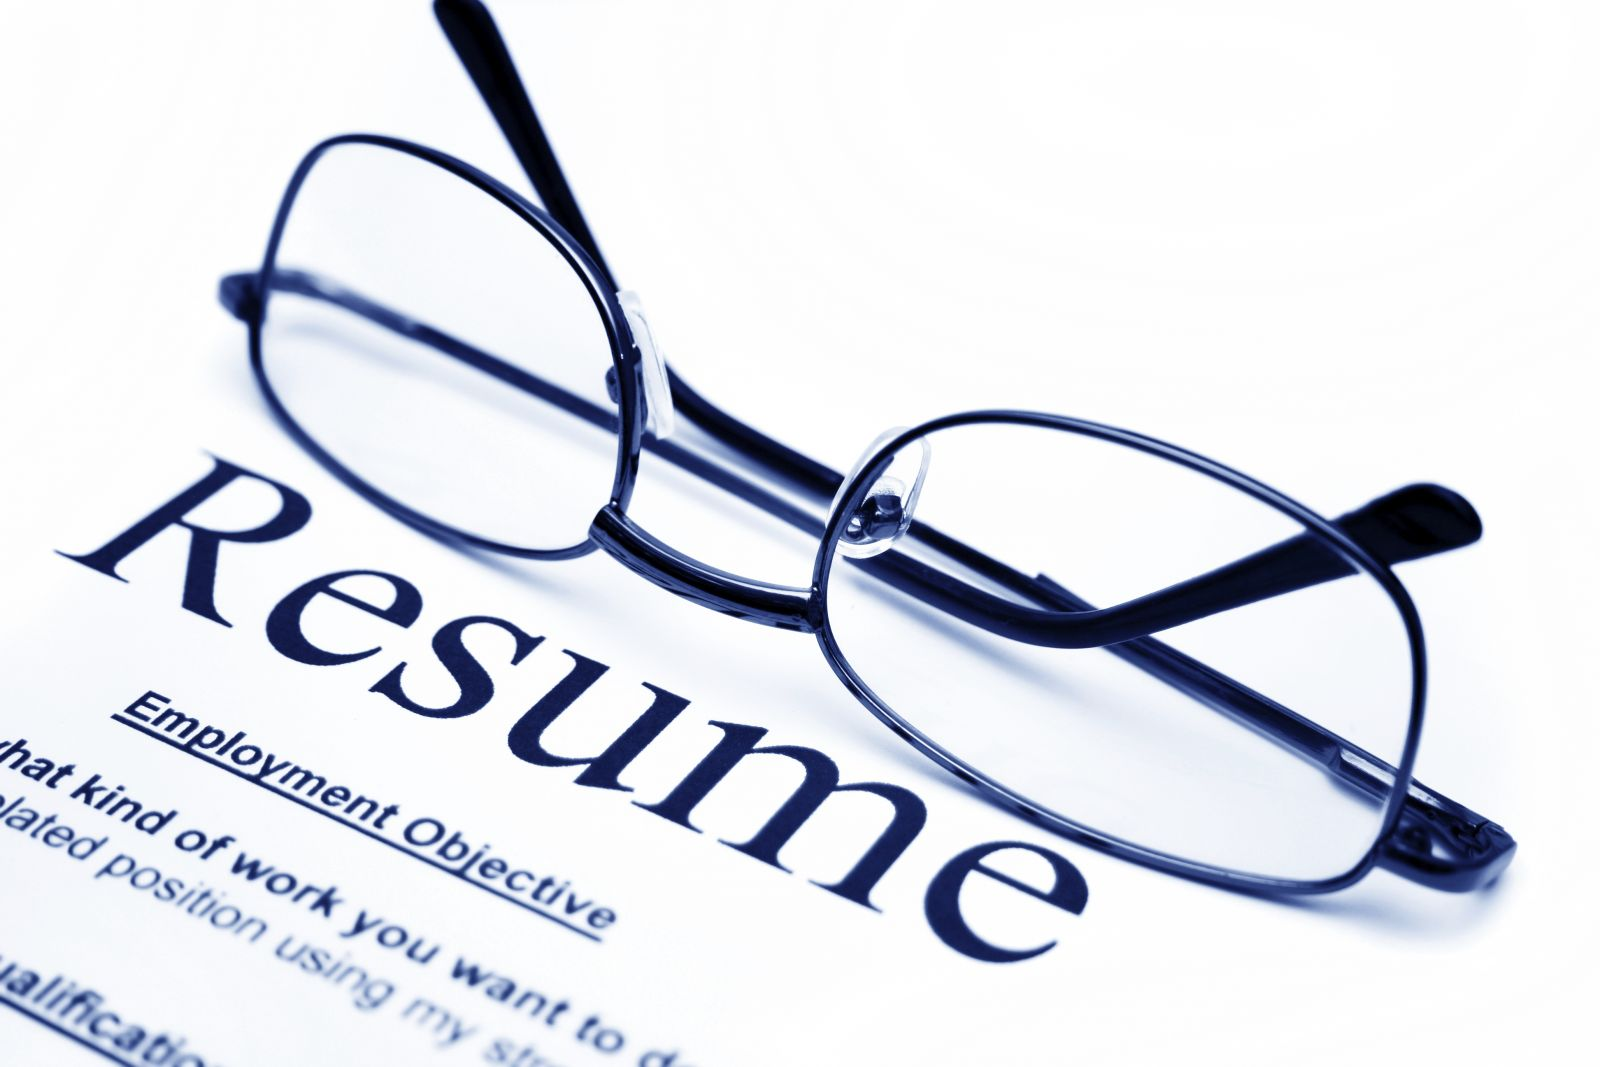 6 important reasons to use a resume builder to craft a perfect resume